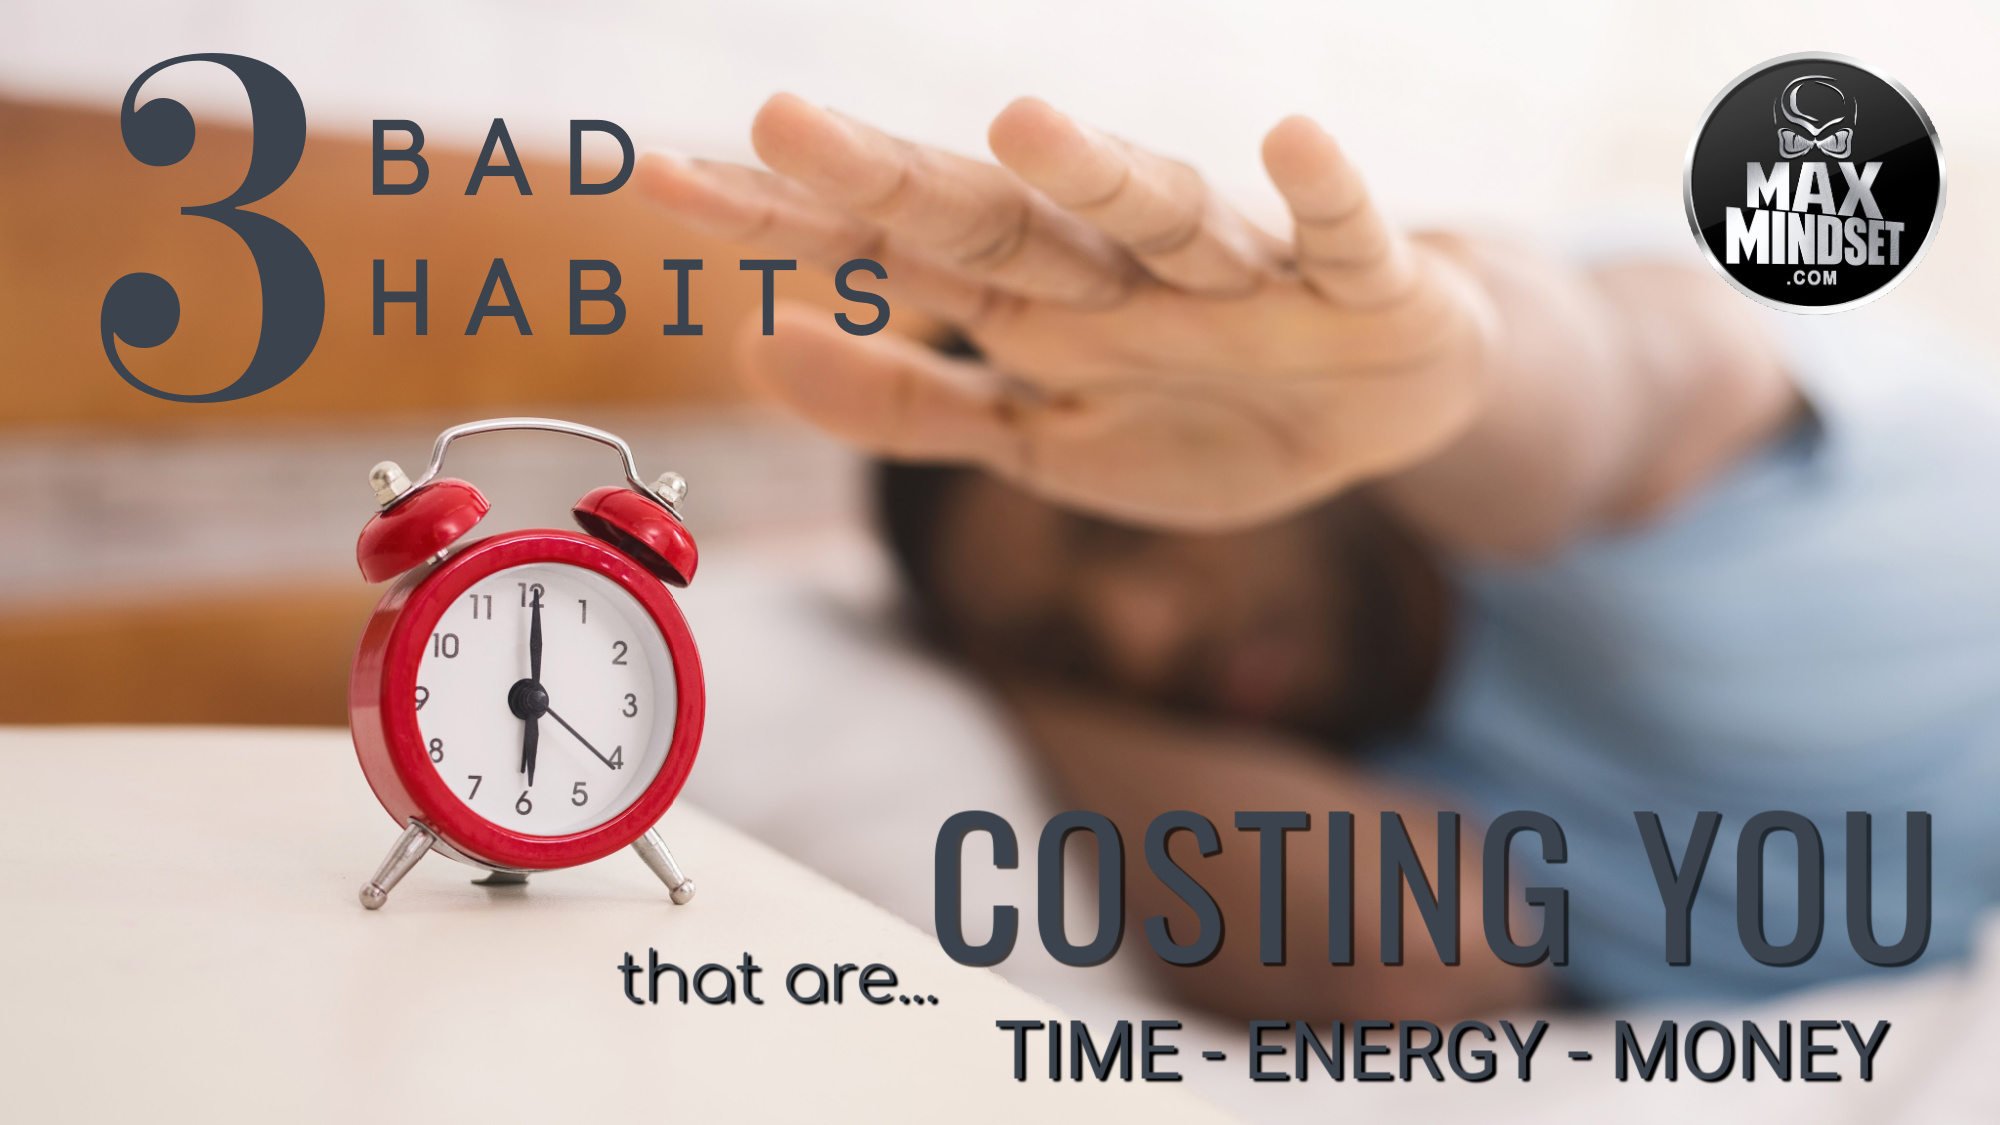 Morning Habits That Are Costing You Time-Energy-Money.